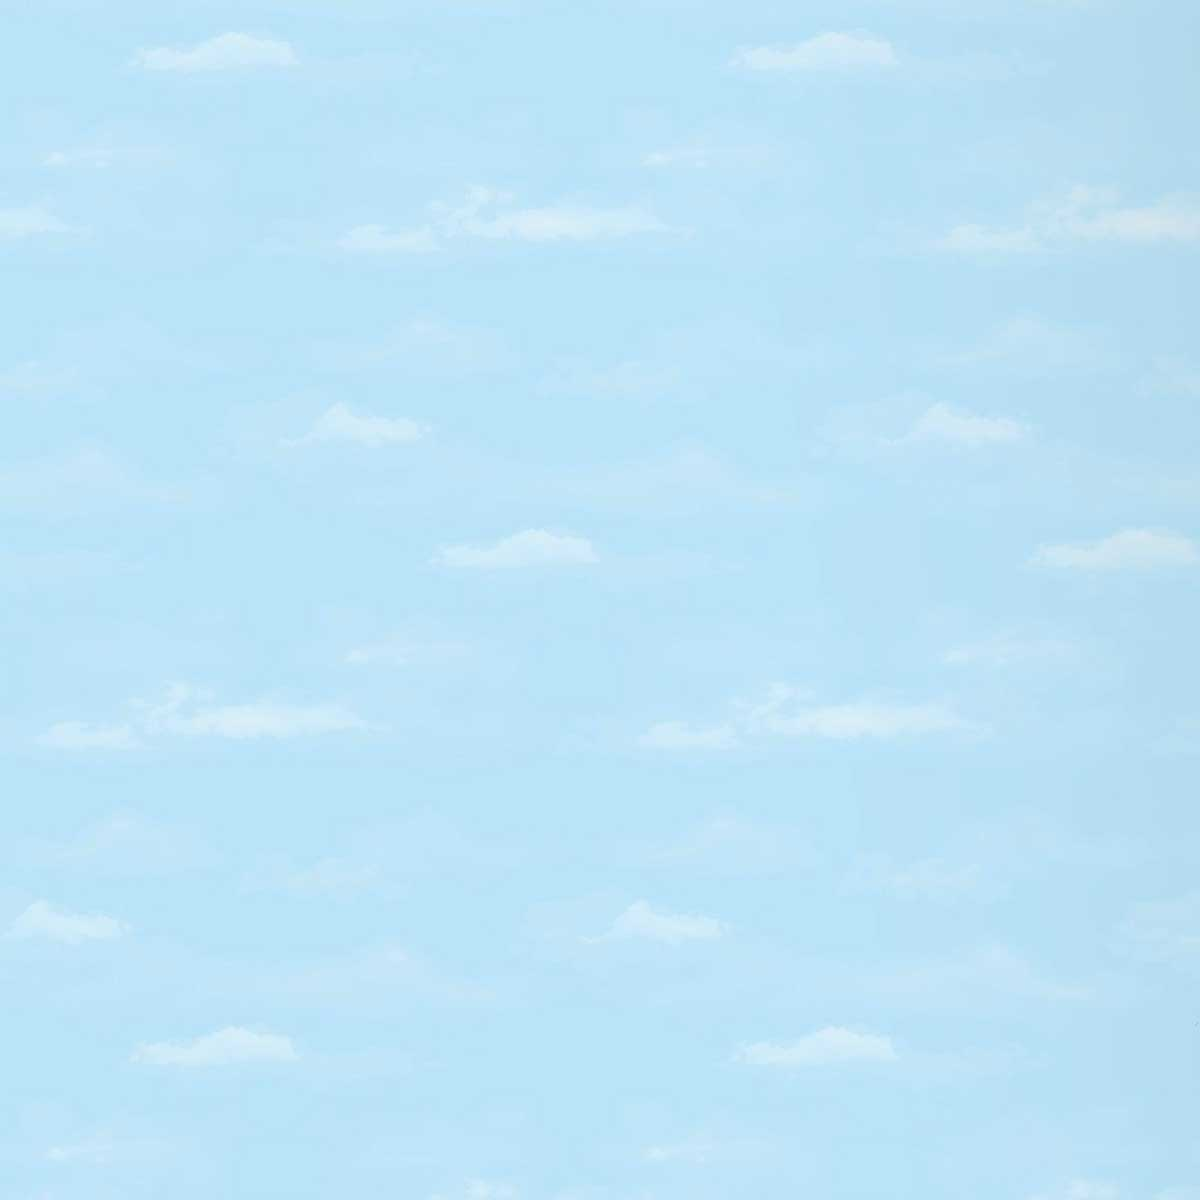 SK Filson Clouds in the Sky Border Blue extra image